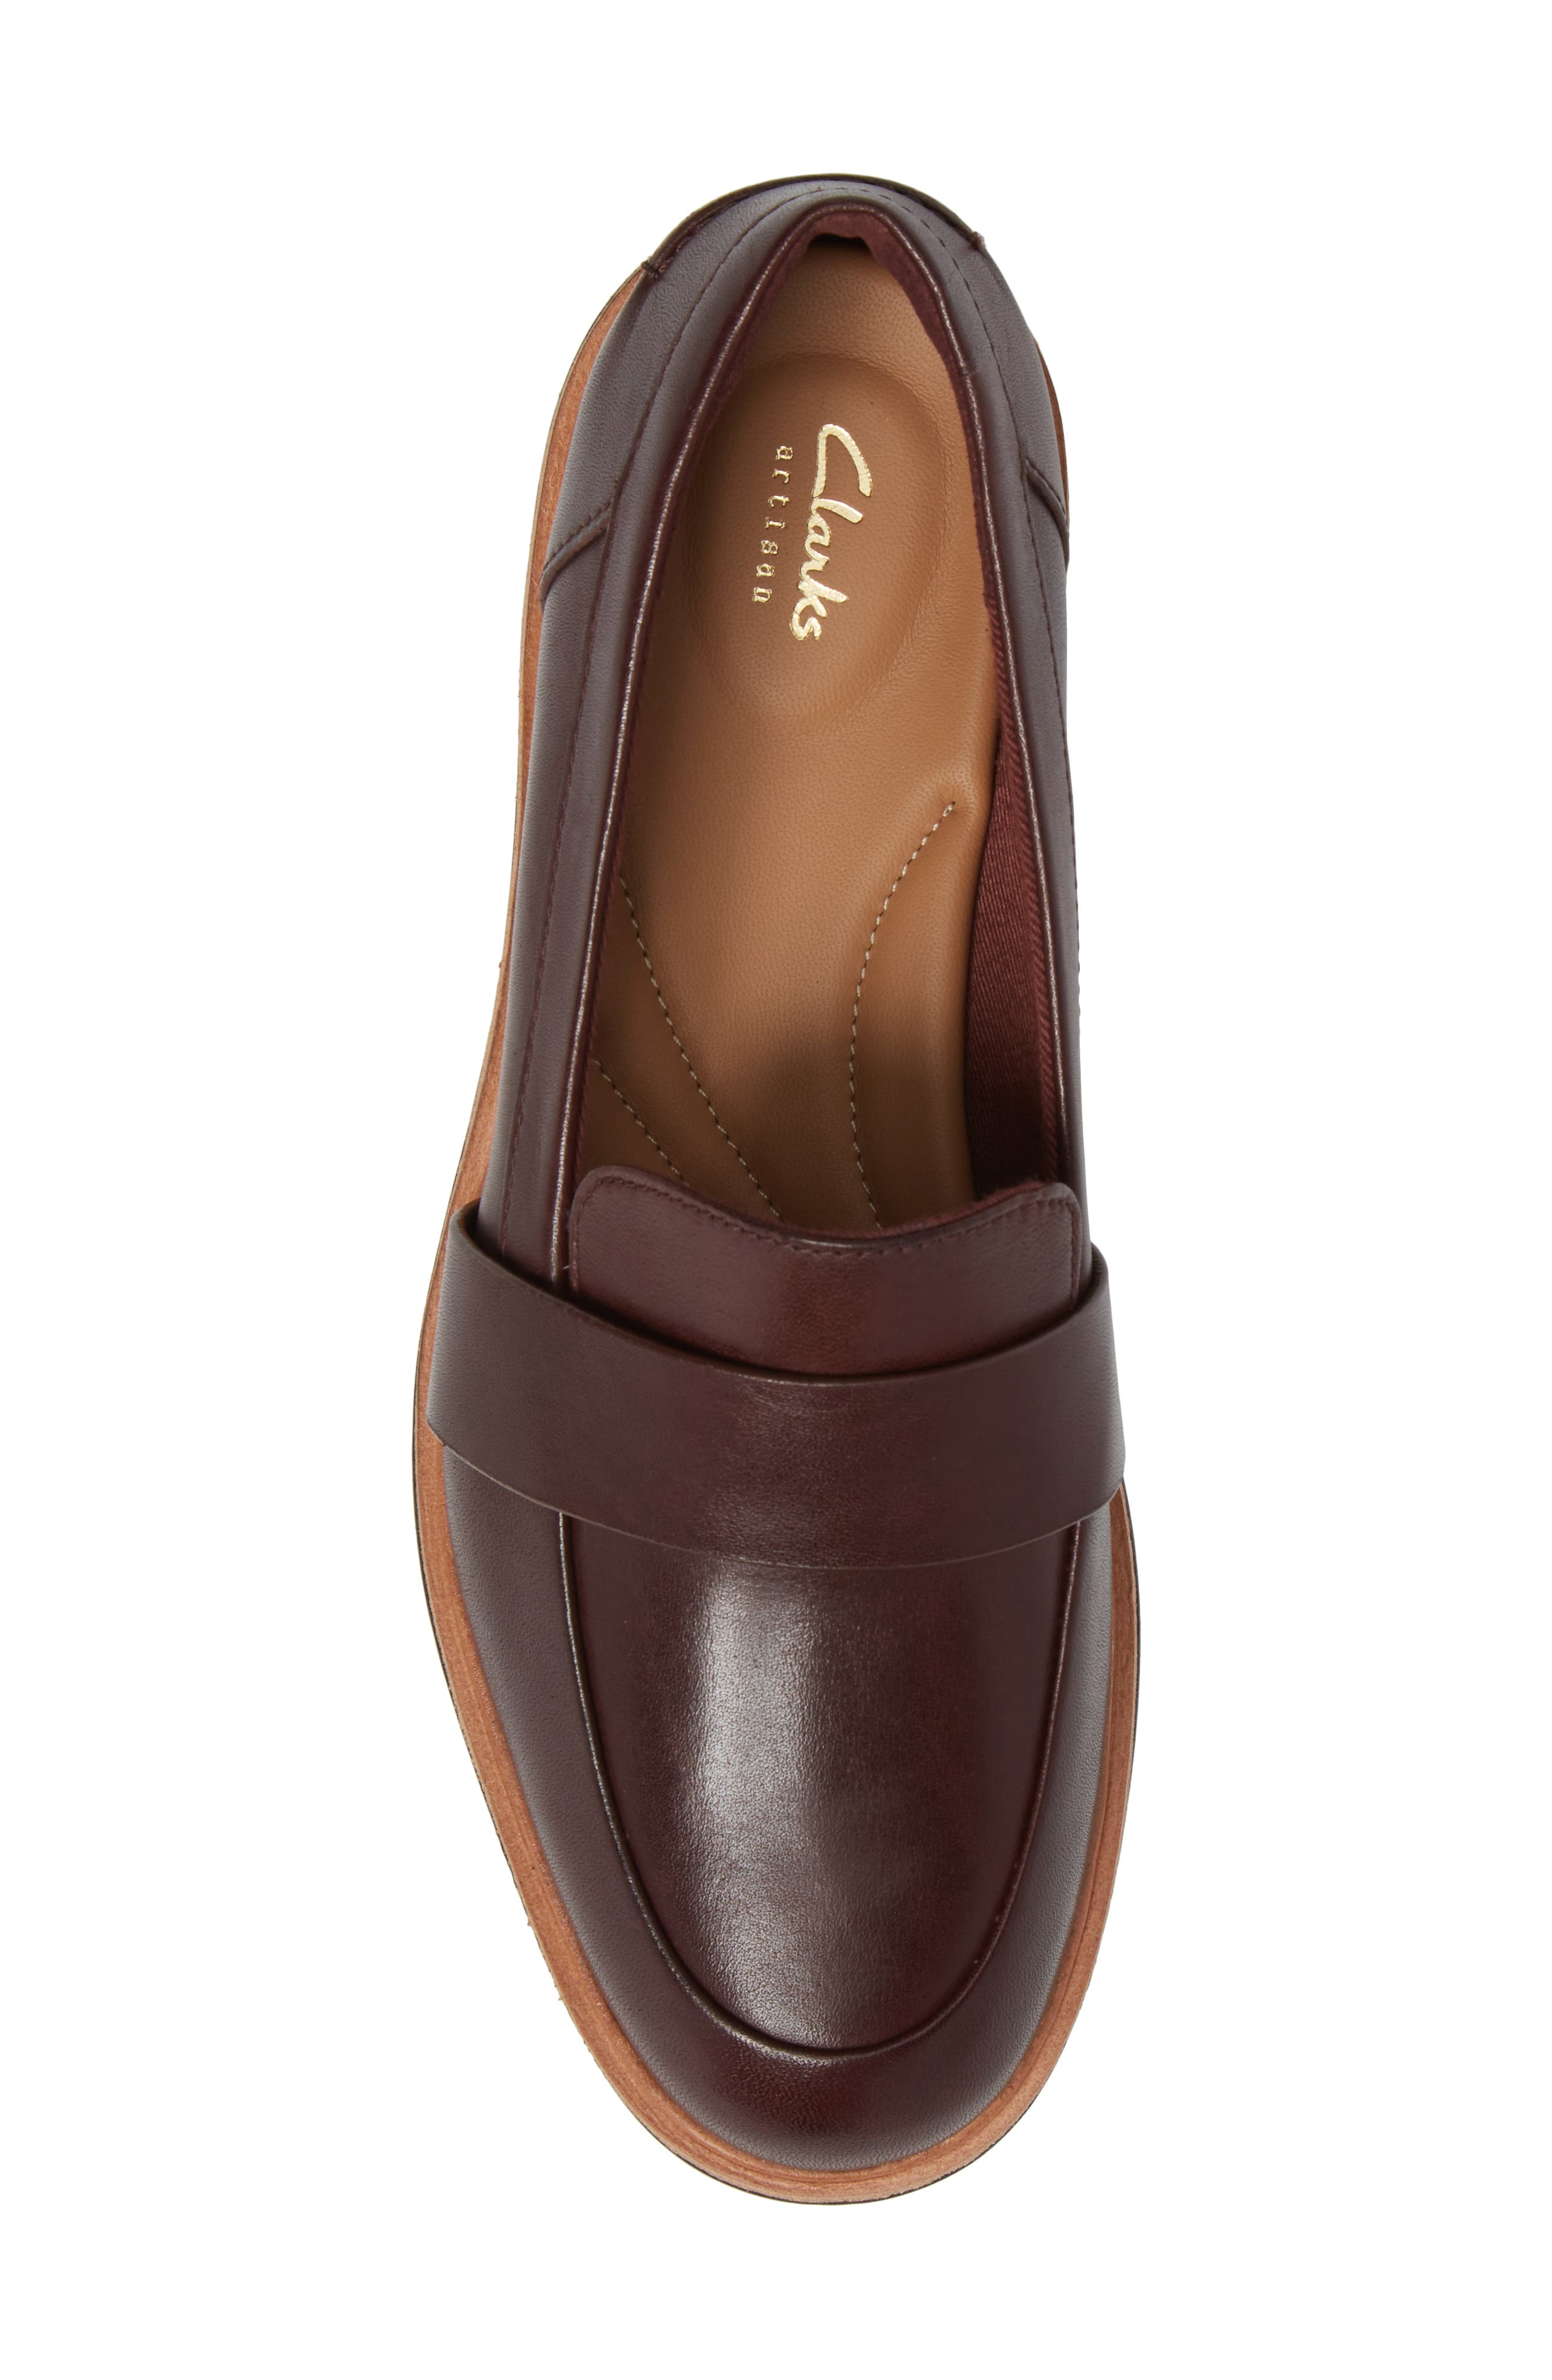 CLARKS<SUP>®</SUP>, Teadale Elsa Loafer, Alternate thumbnail 5, color, BURGUNDY LEATHER